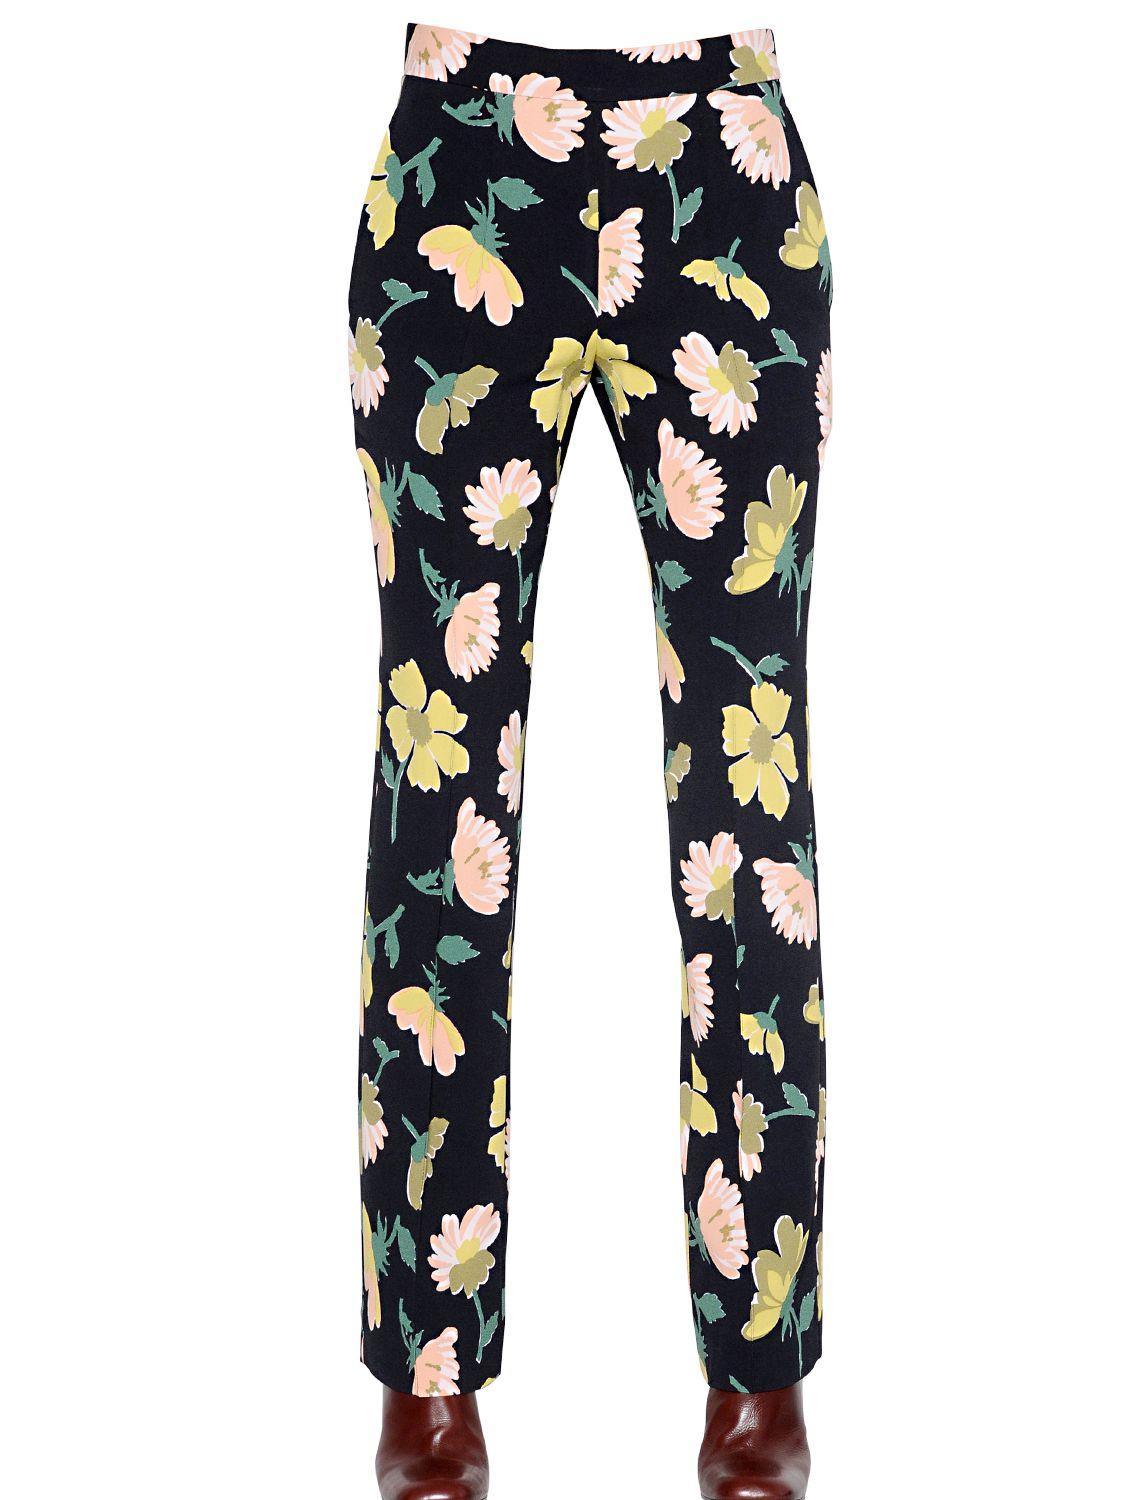 Marni floral trousers Amazon Footaction Buy Cheap Purchase 6UHzgT2P